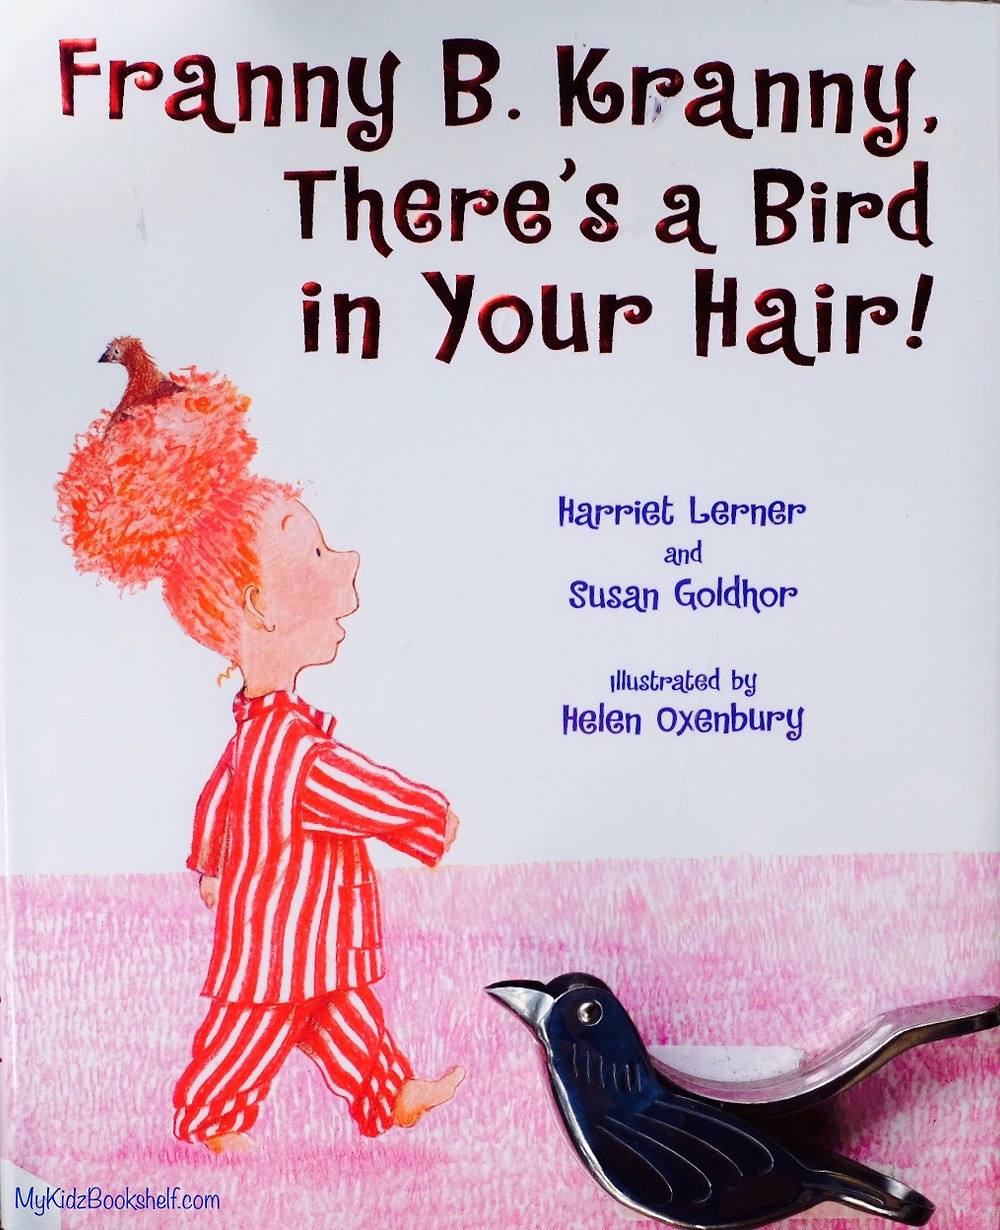 Franny B. Kranny There's A Bird in Your Hair illustration book cover with Franny in striped pajamas with bird on top of her head in her hair